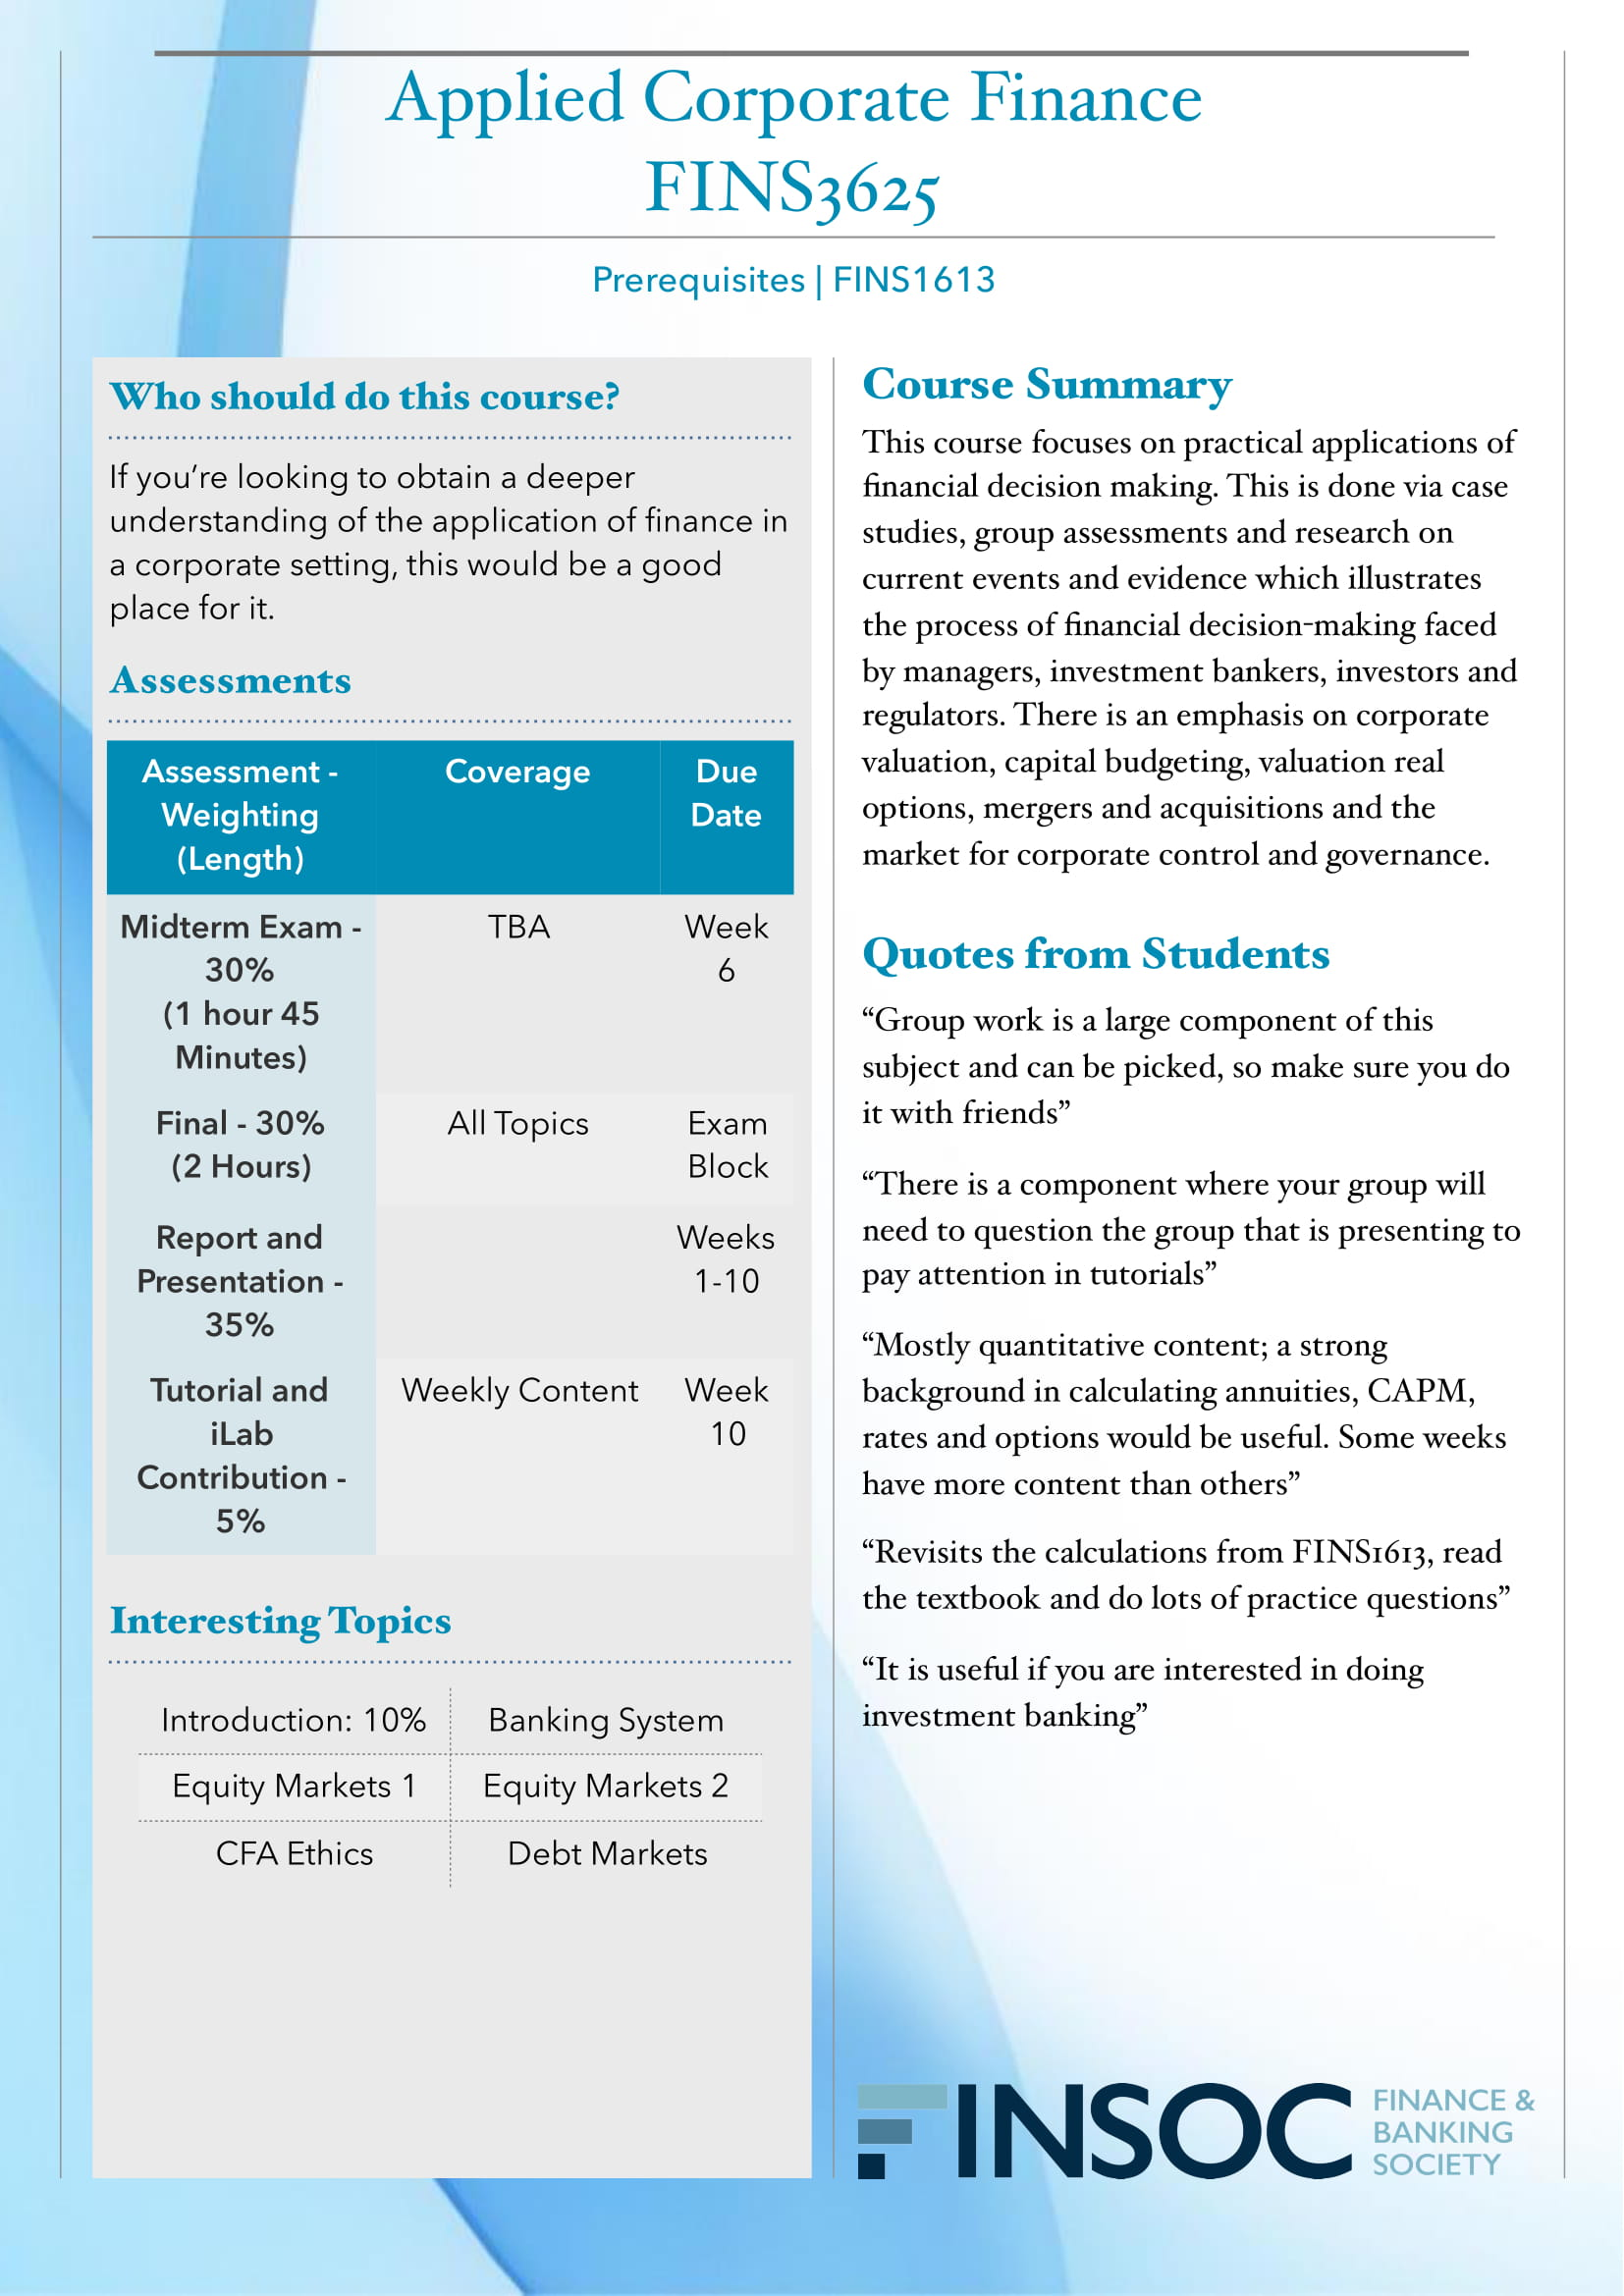 FINS3625 Applied Corporate Financeimage preview for post